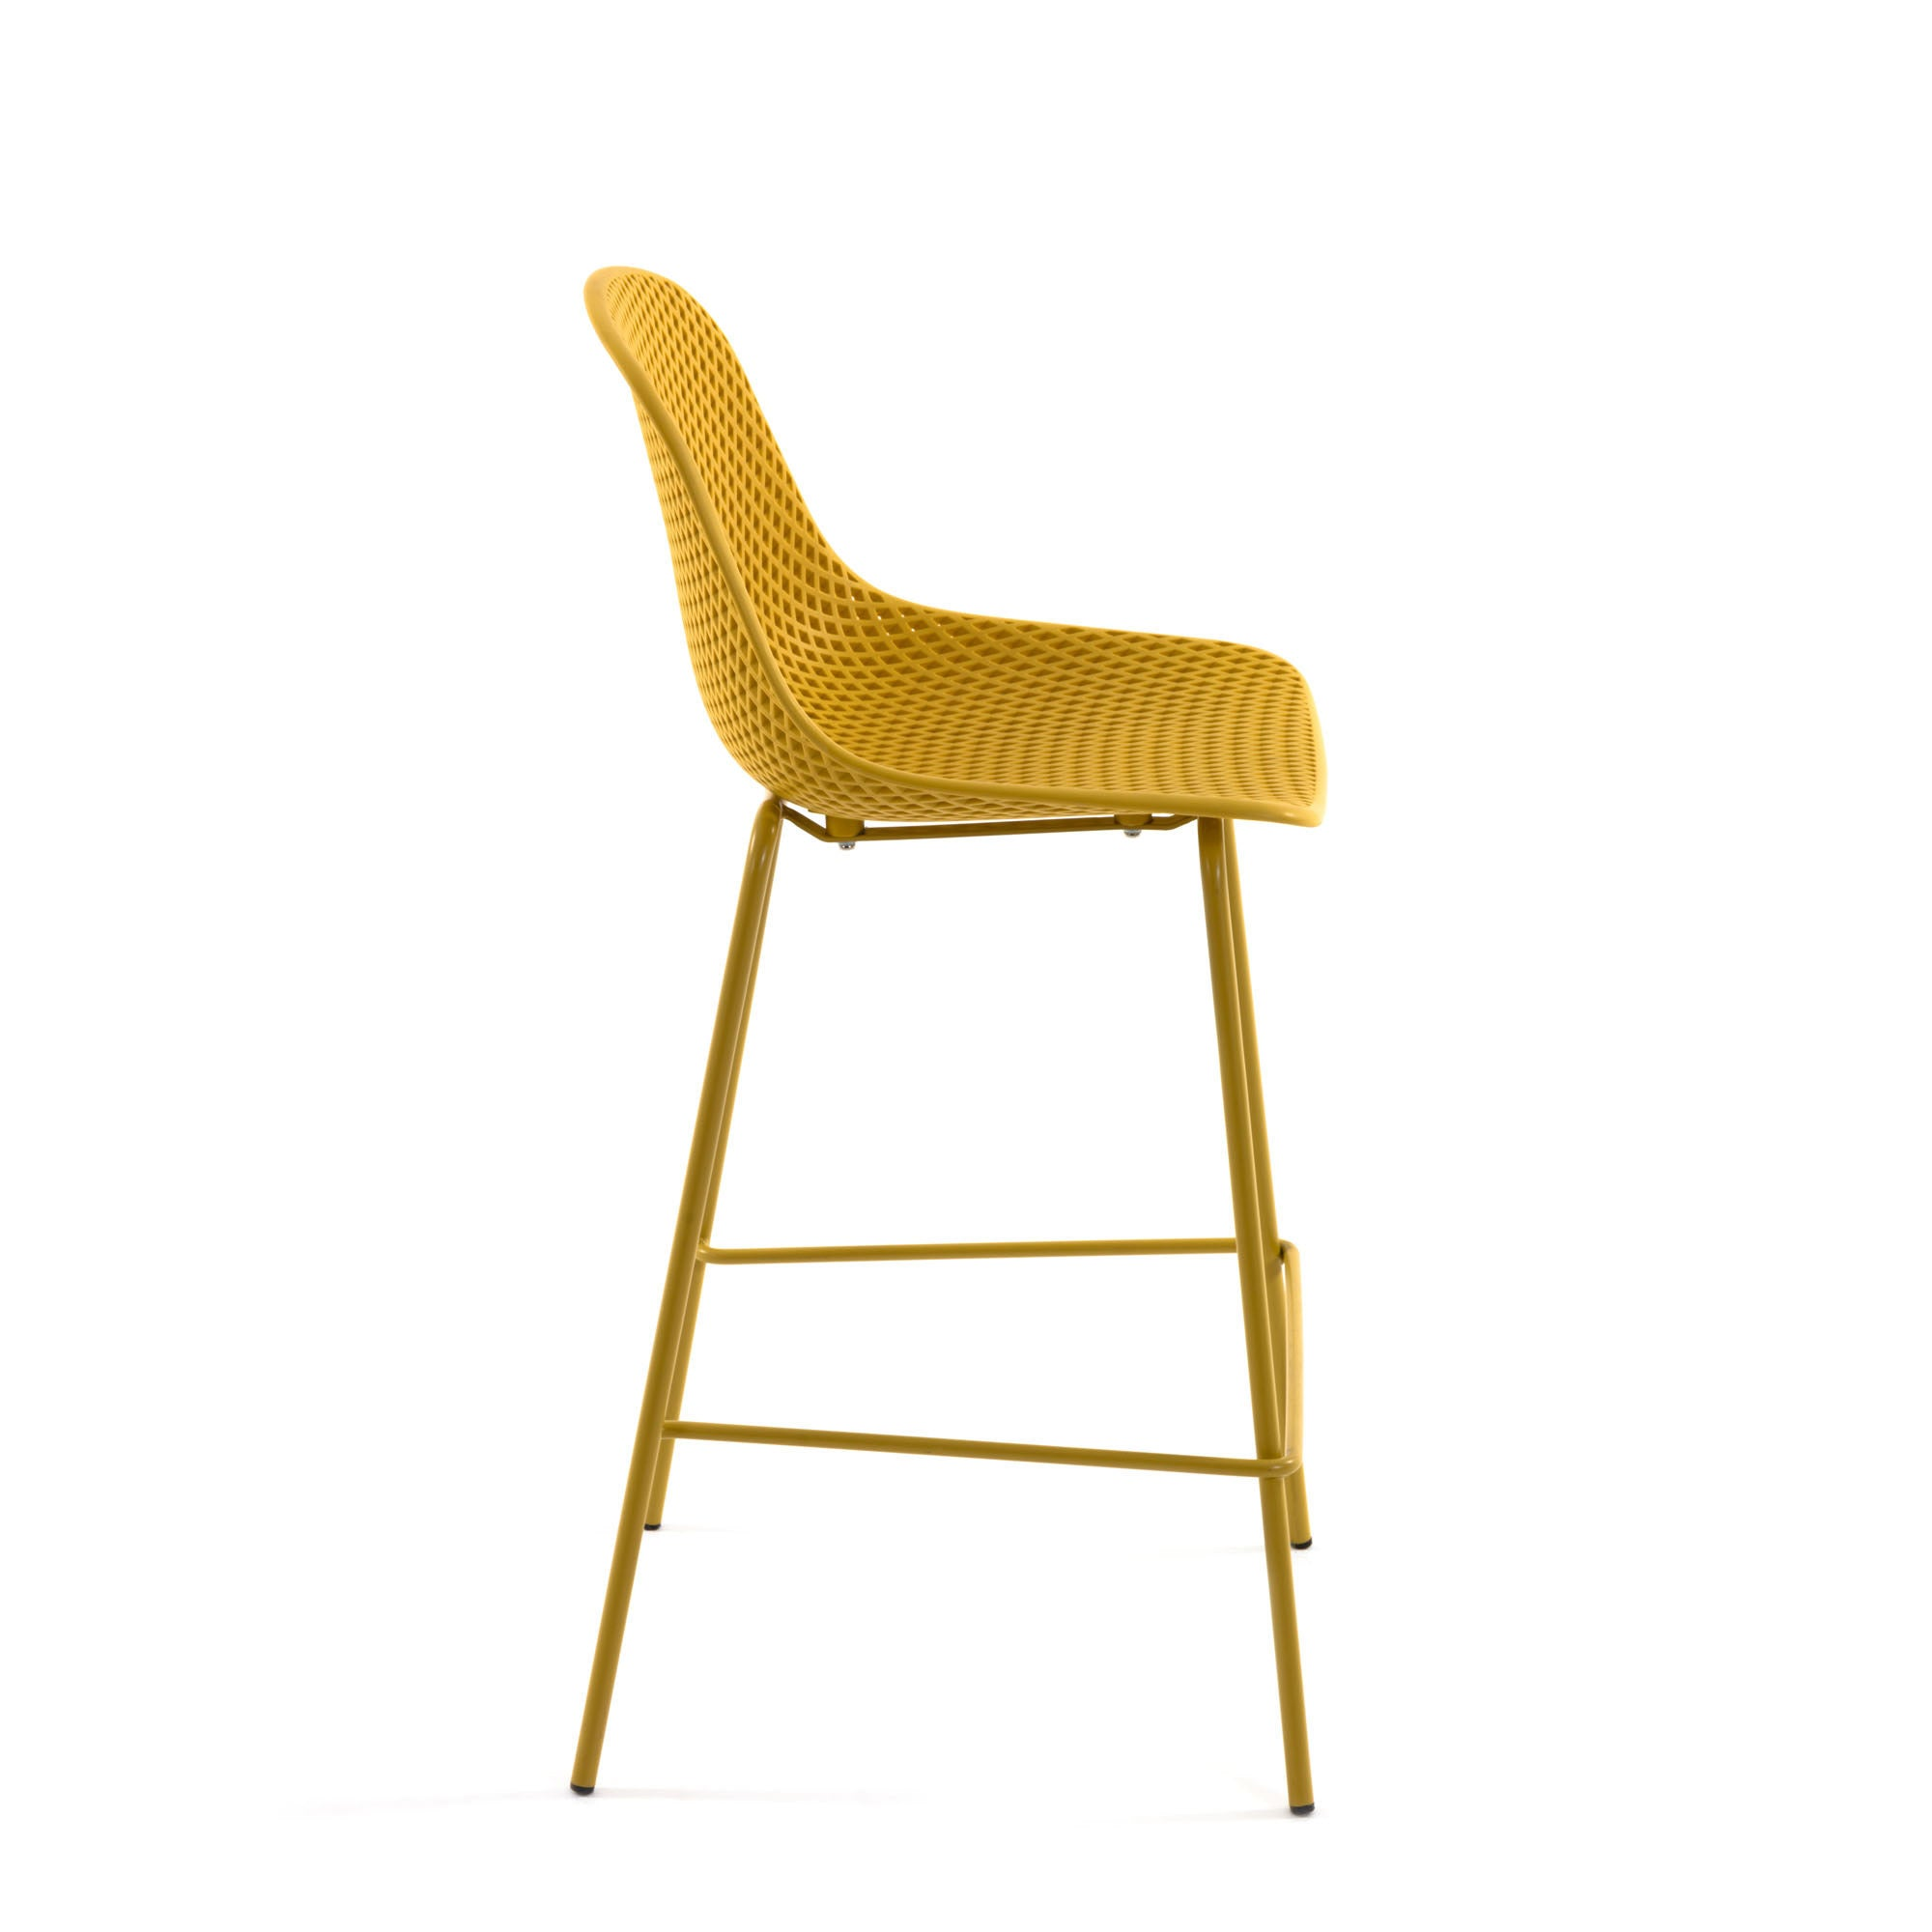 Luino Outdoor Stool Yellow Height 75 cm, Barstool - Home-Buy Interiors